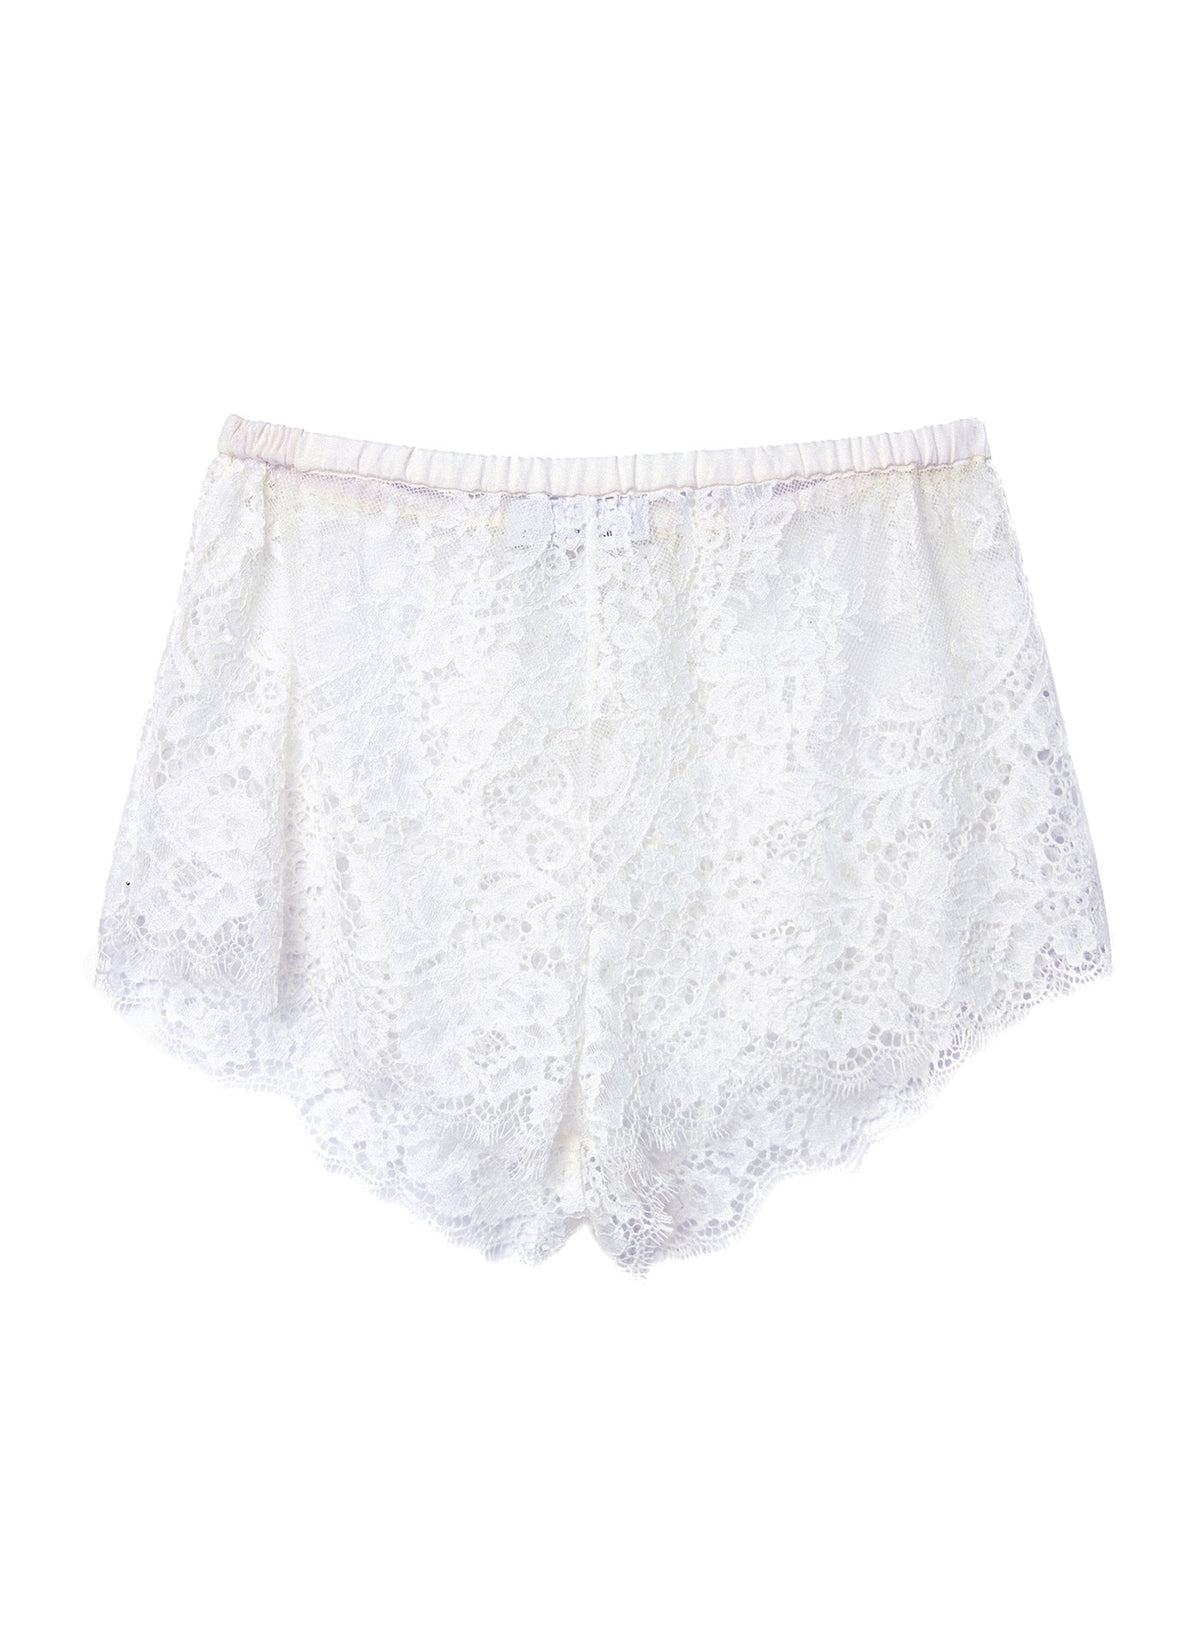 Cillis Lace Tap Shorts